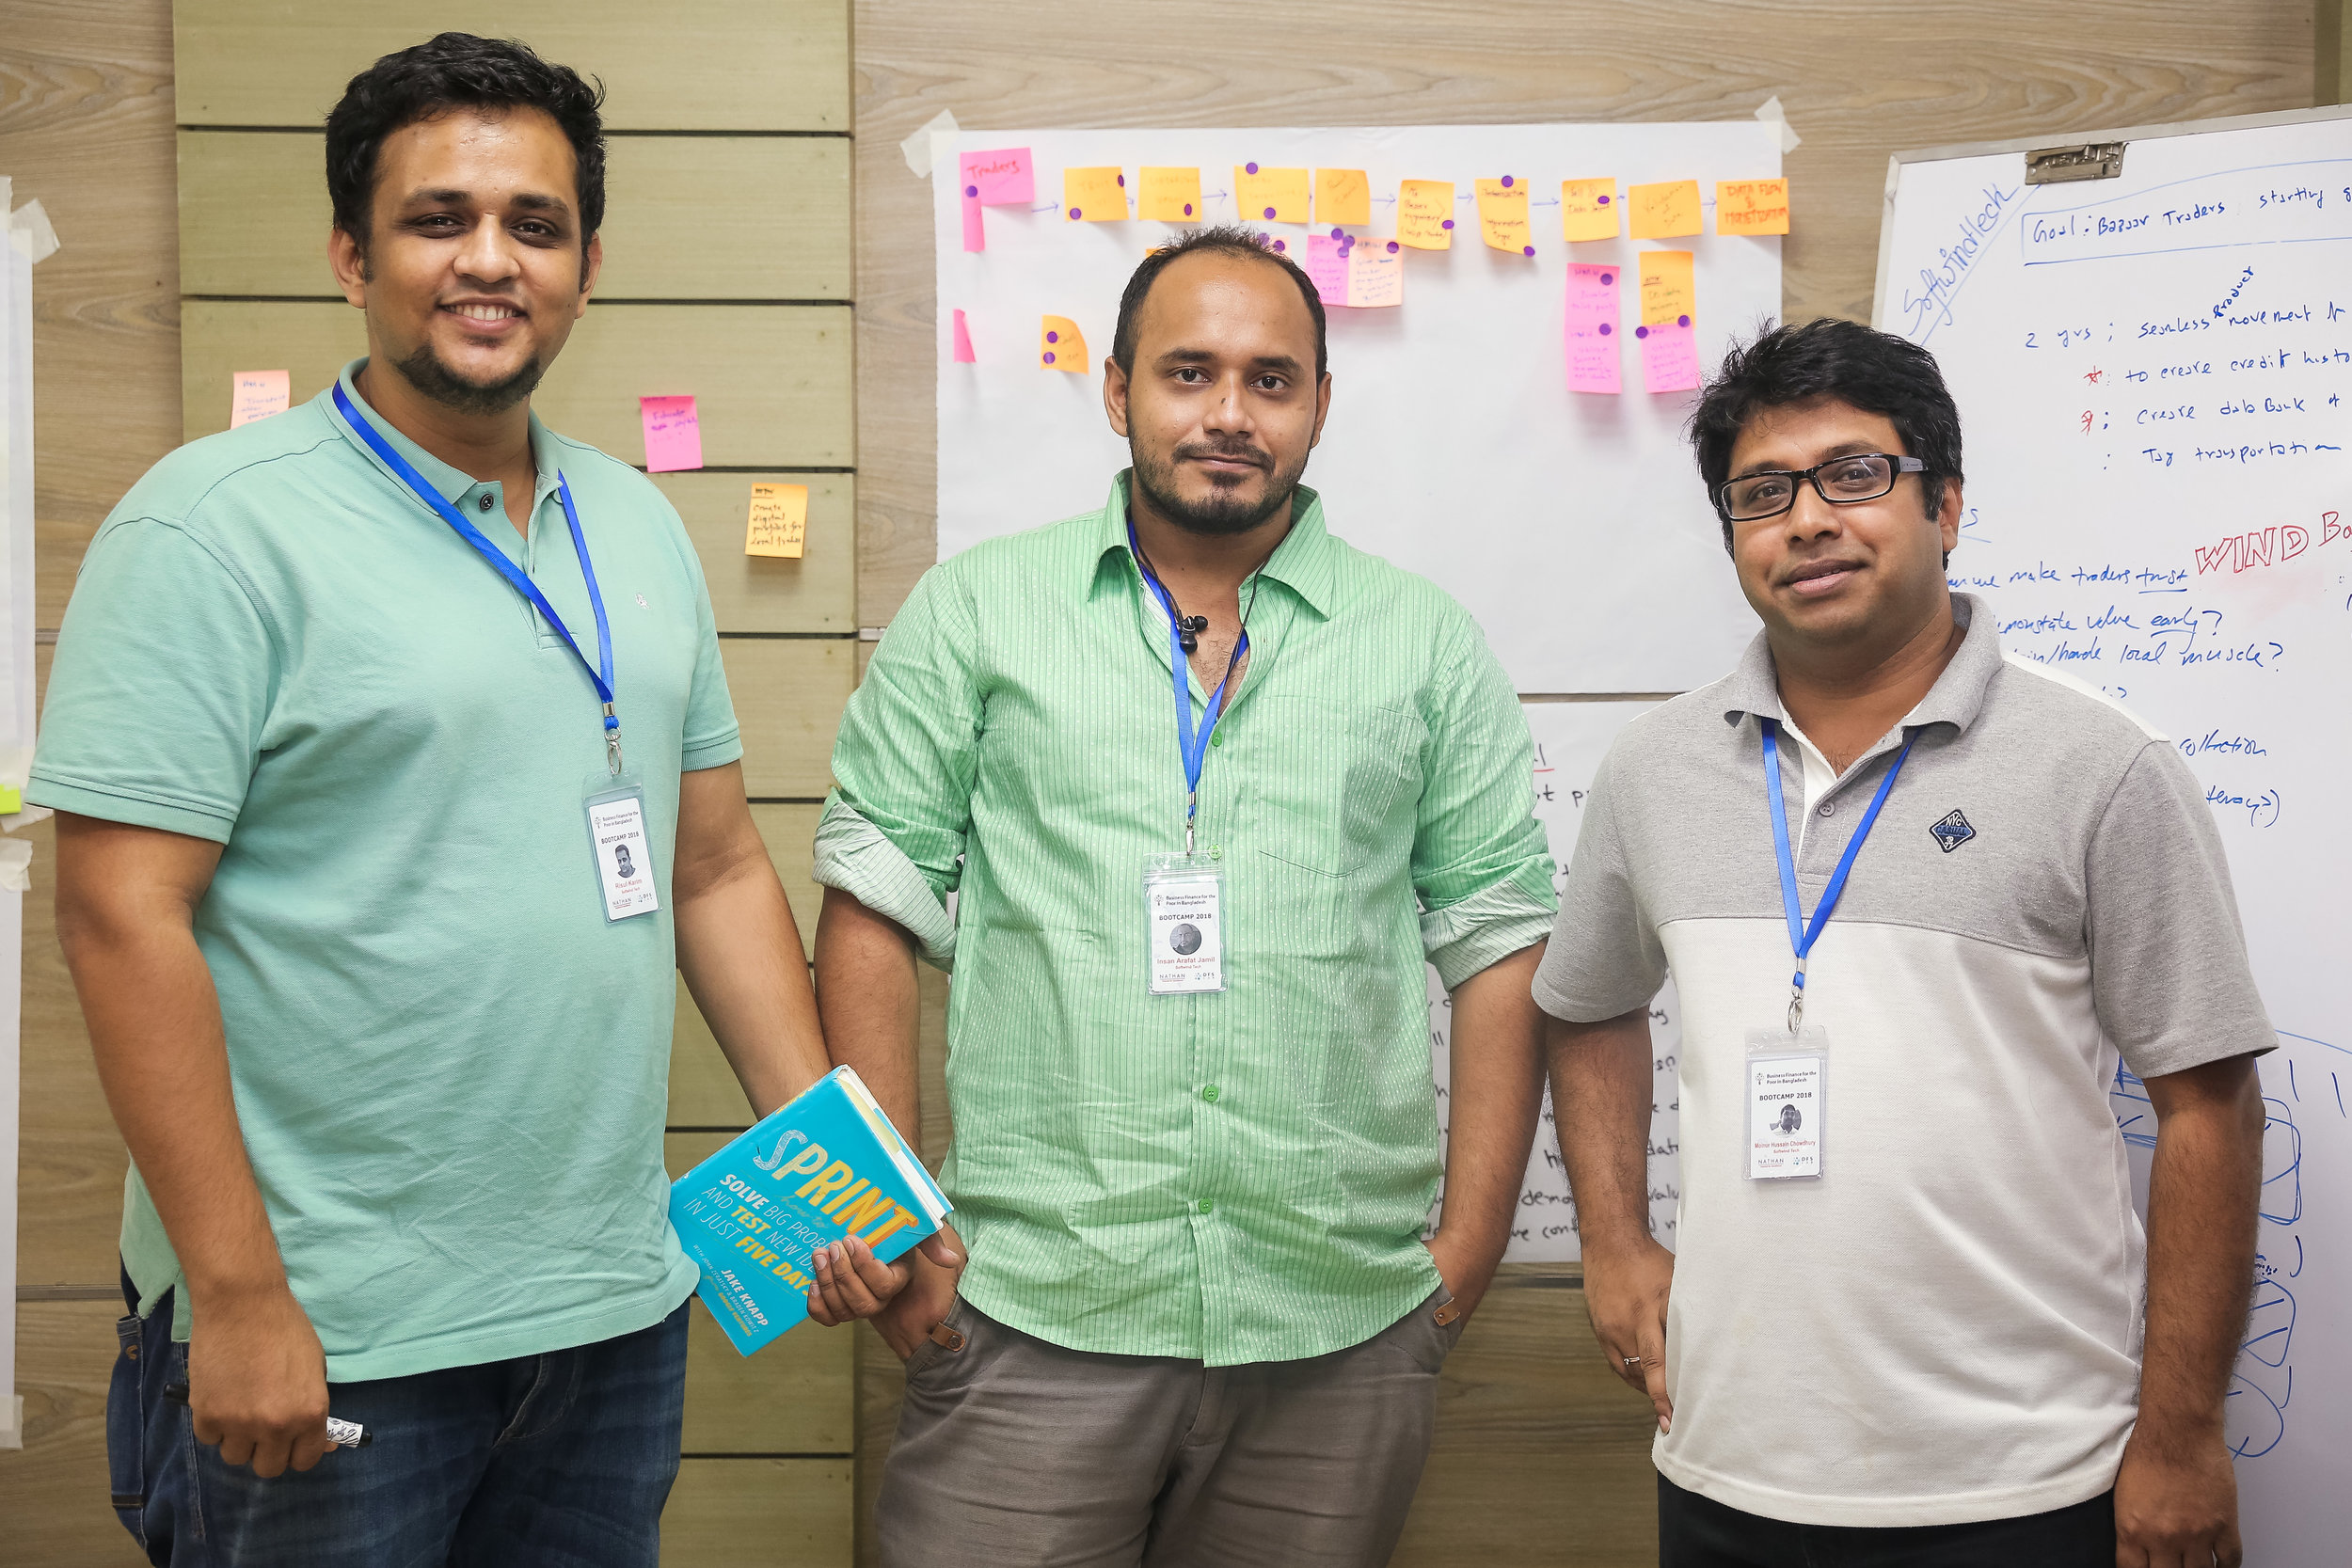 """Wind Bazaar - """"Wind Bazaar aims to record transactions that take place in the local markets, colloquially known as haats in Bangladesh. While creating the prototype, we got insight into some problems which we had not considered earlier. With the sprint process though, we were also able to easily draw a solution."""""""